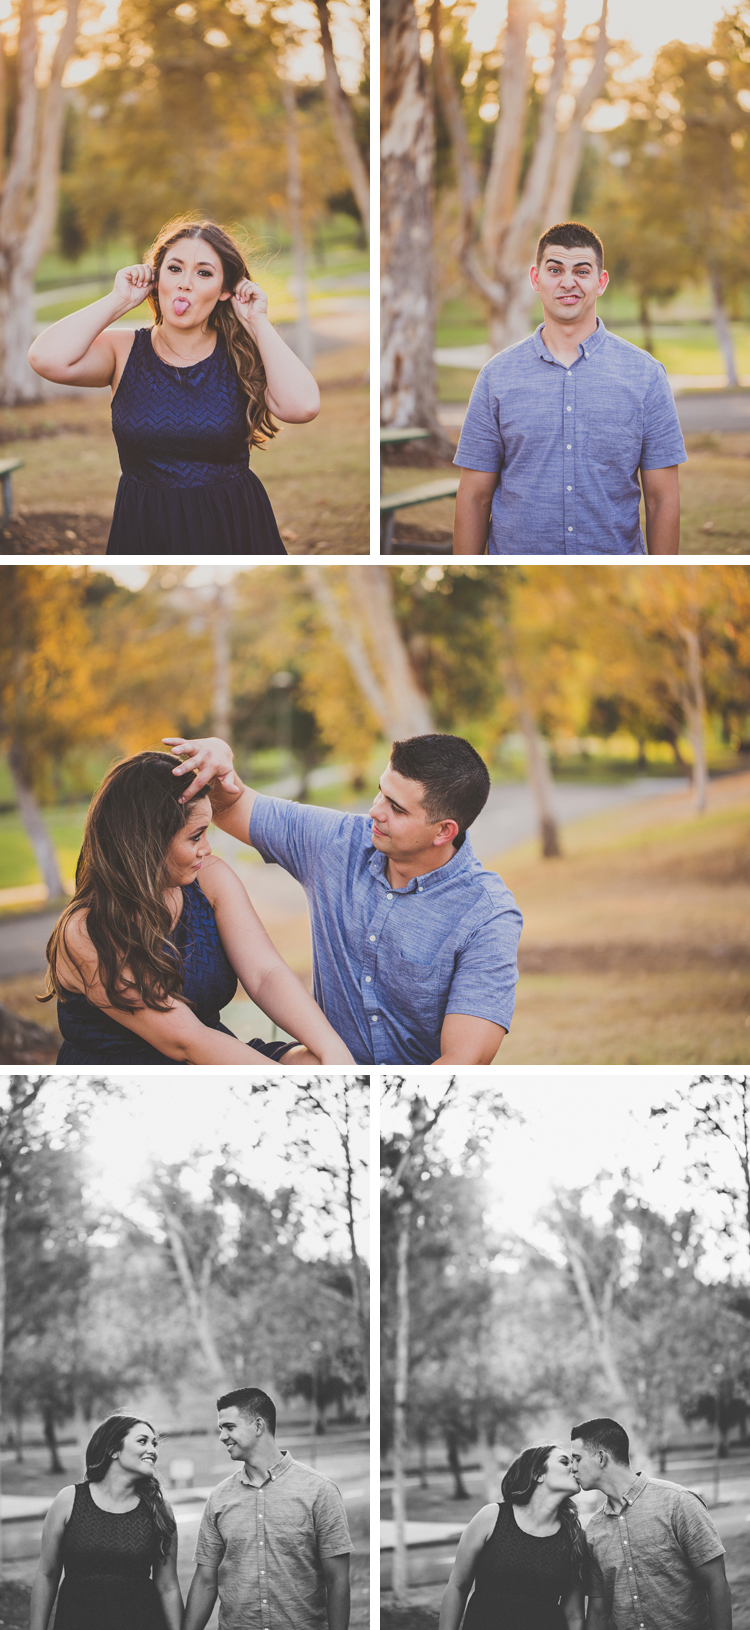 Craig Park Engagement Photos Brea California